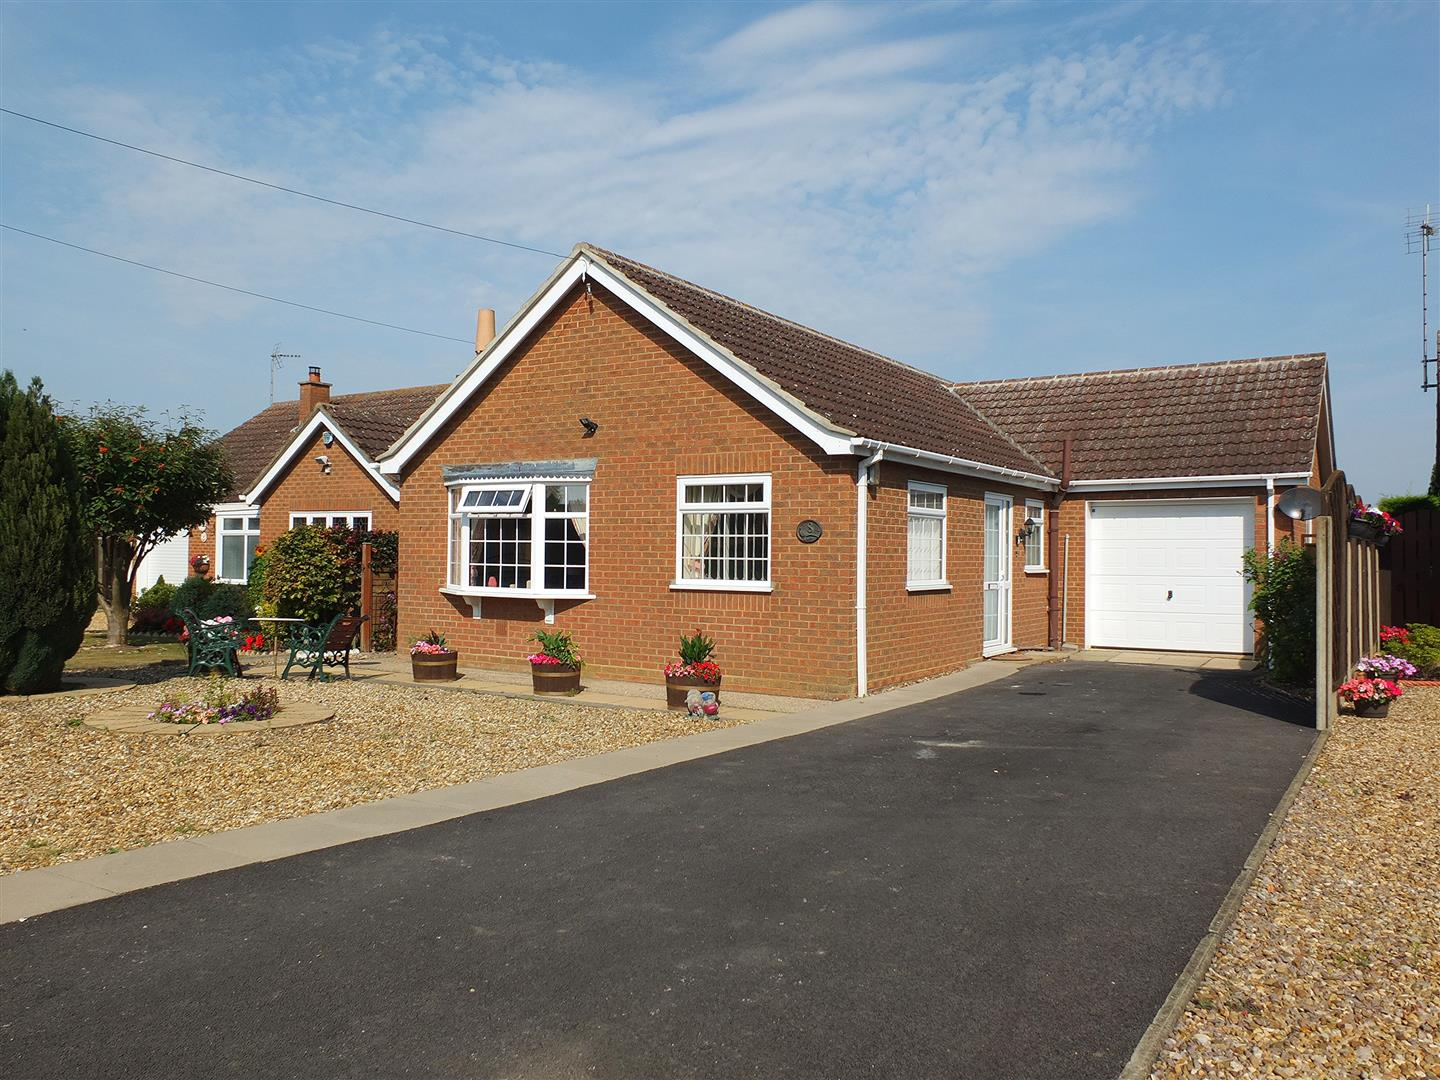 2 bed detached bungalow for sale in Lutton Spalding, PE12 9NU, PE12